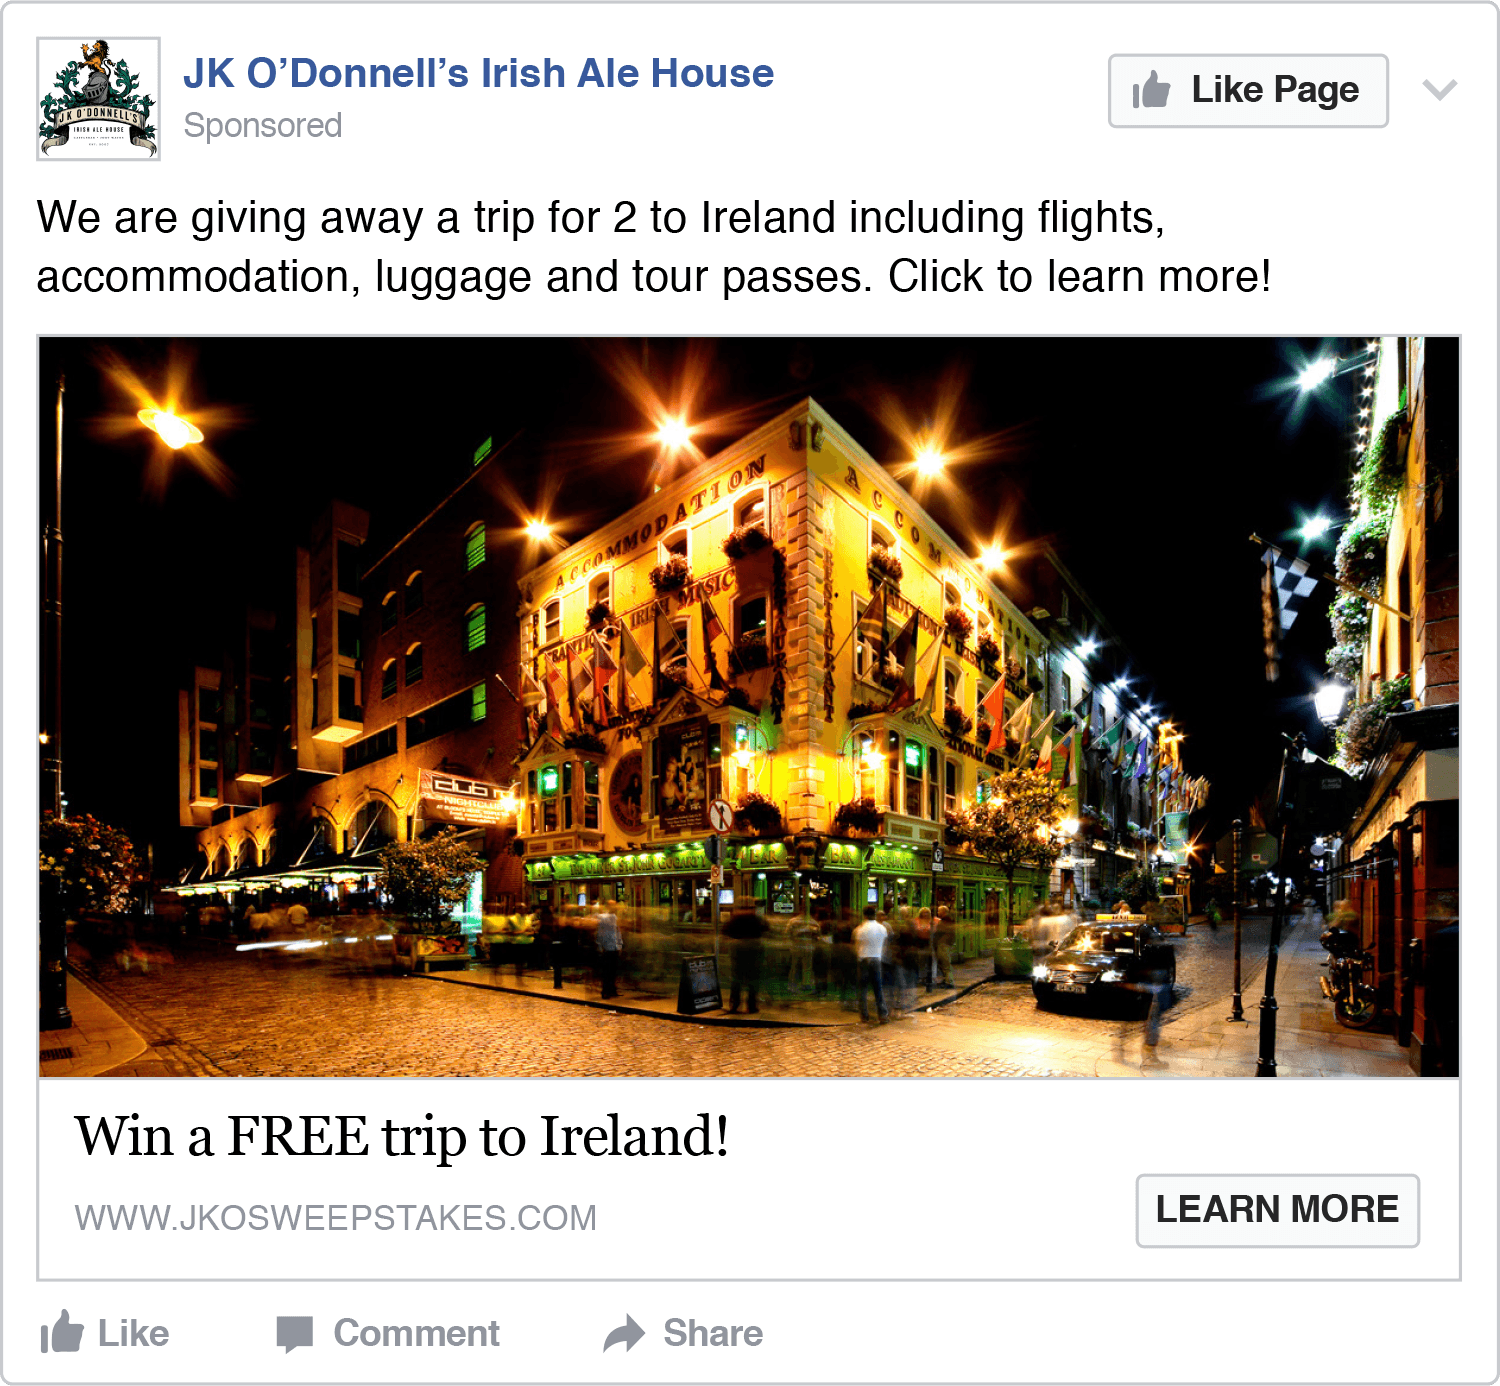 JK O'Donnell's, Passport to Ireland Sweepstakes Facebook Ad